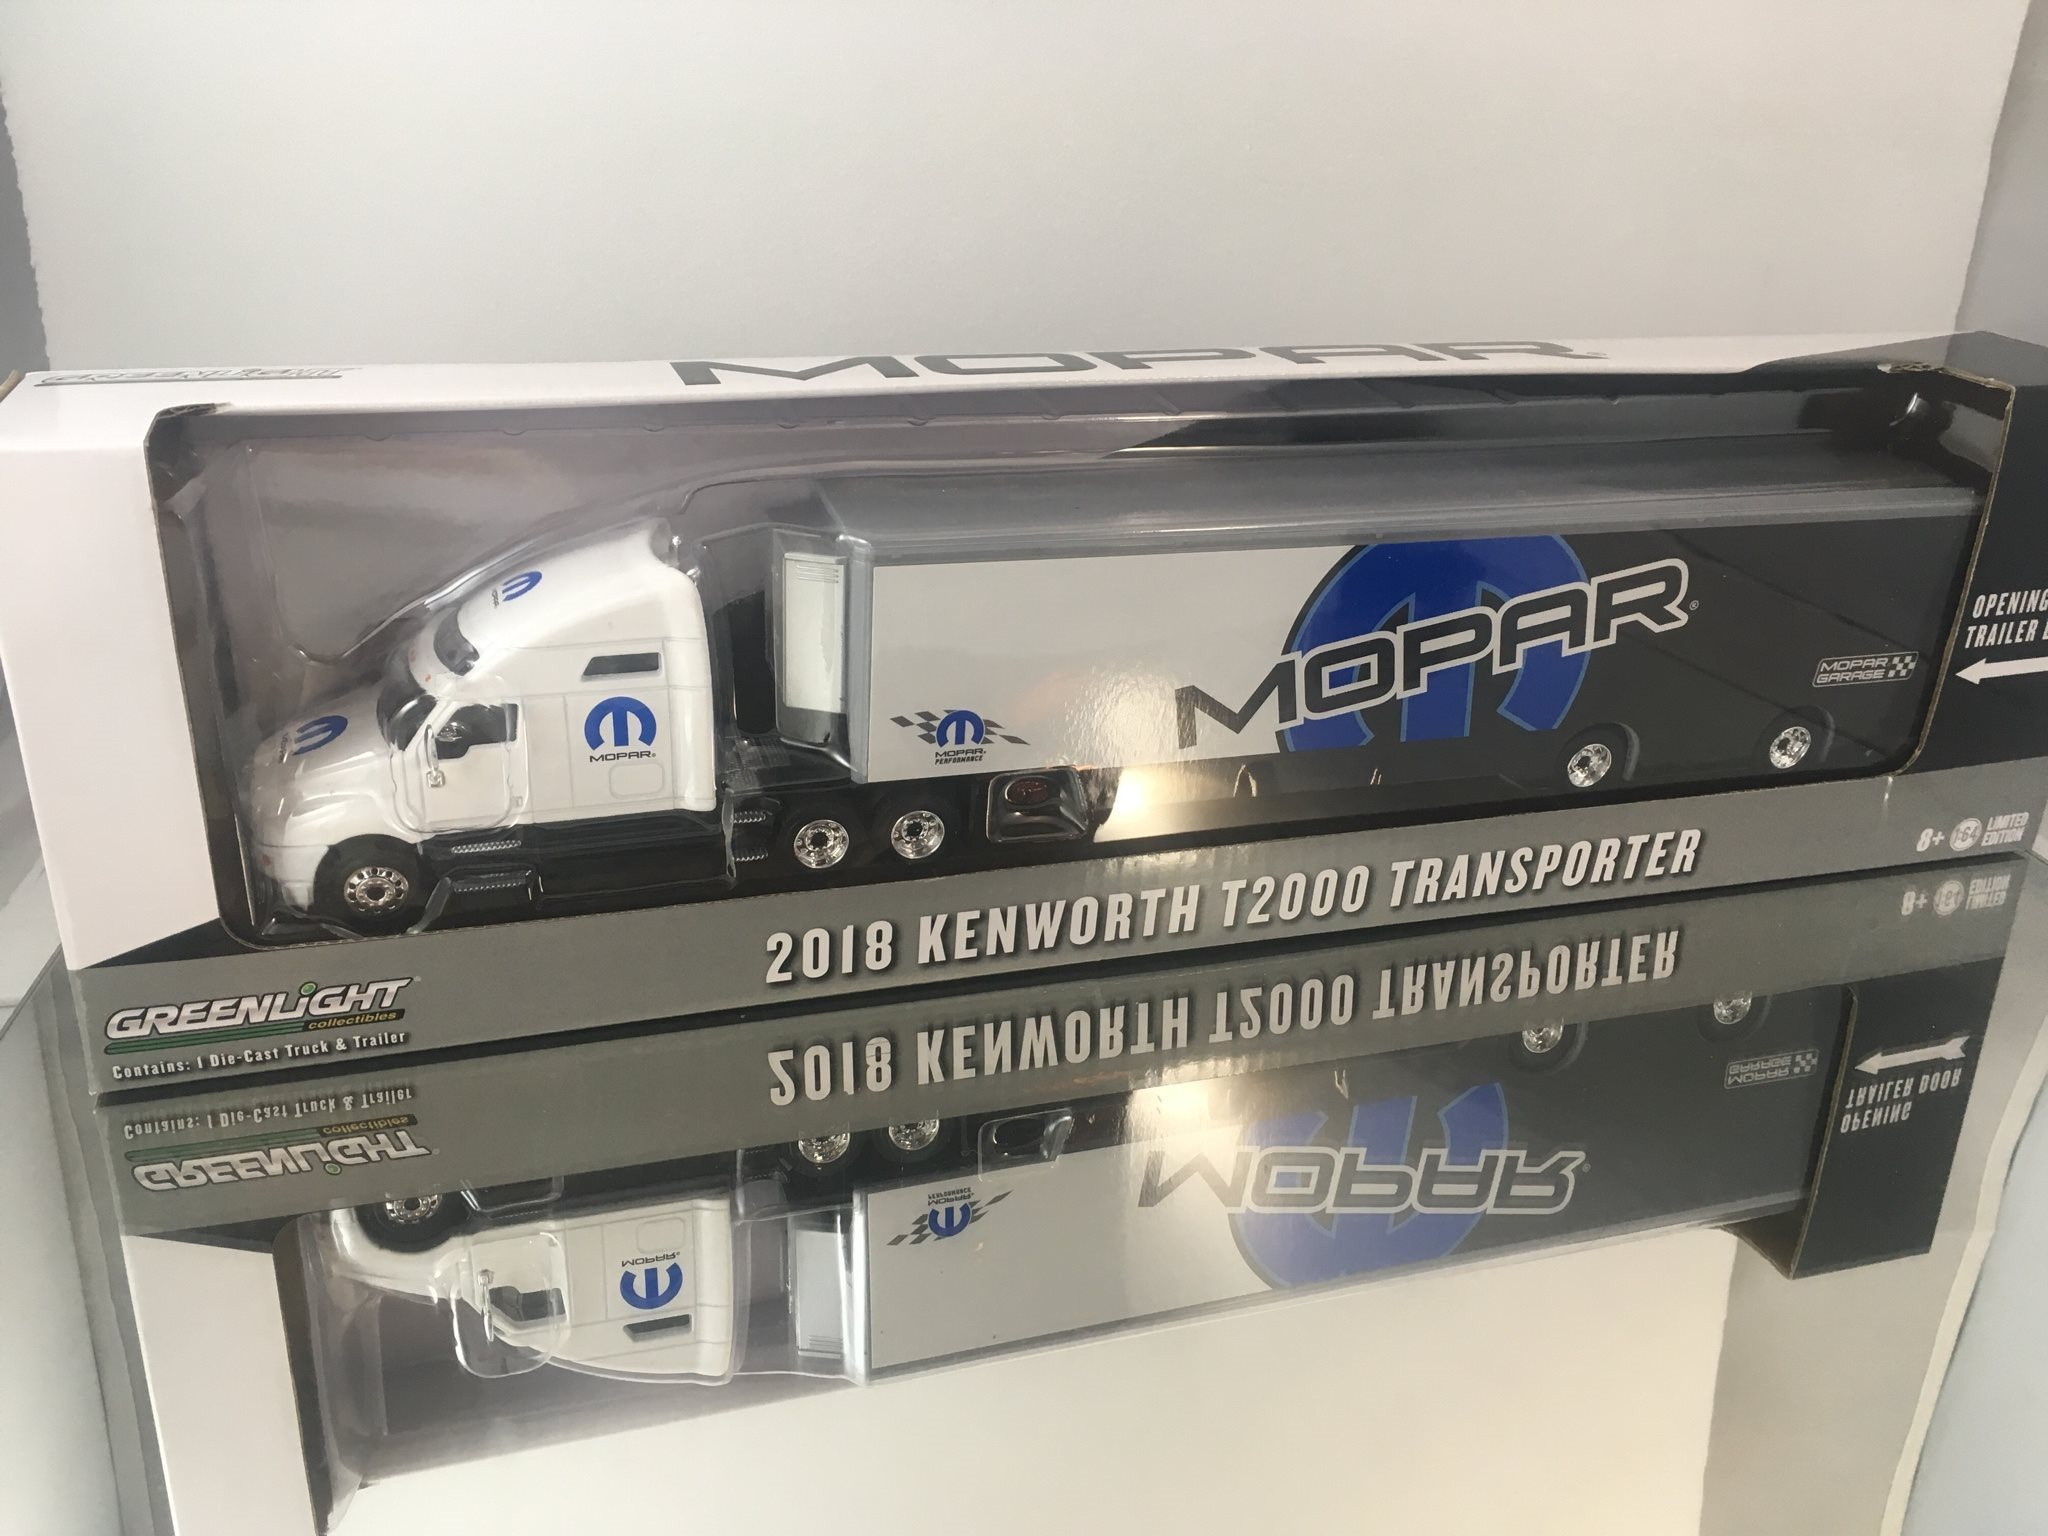 2018 Kennworth T2000 Transporter Greenlight Mopar 1:64 EJ HOT WHEELS